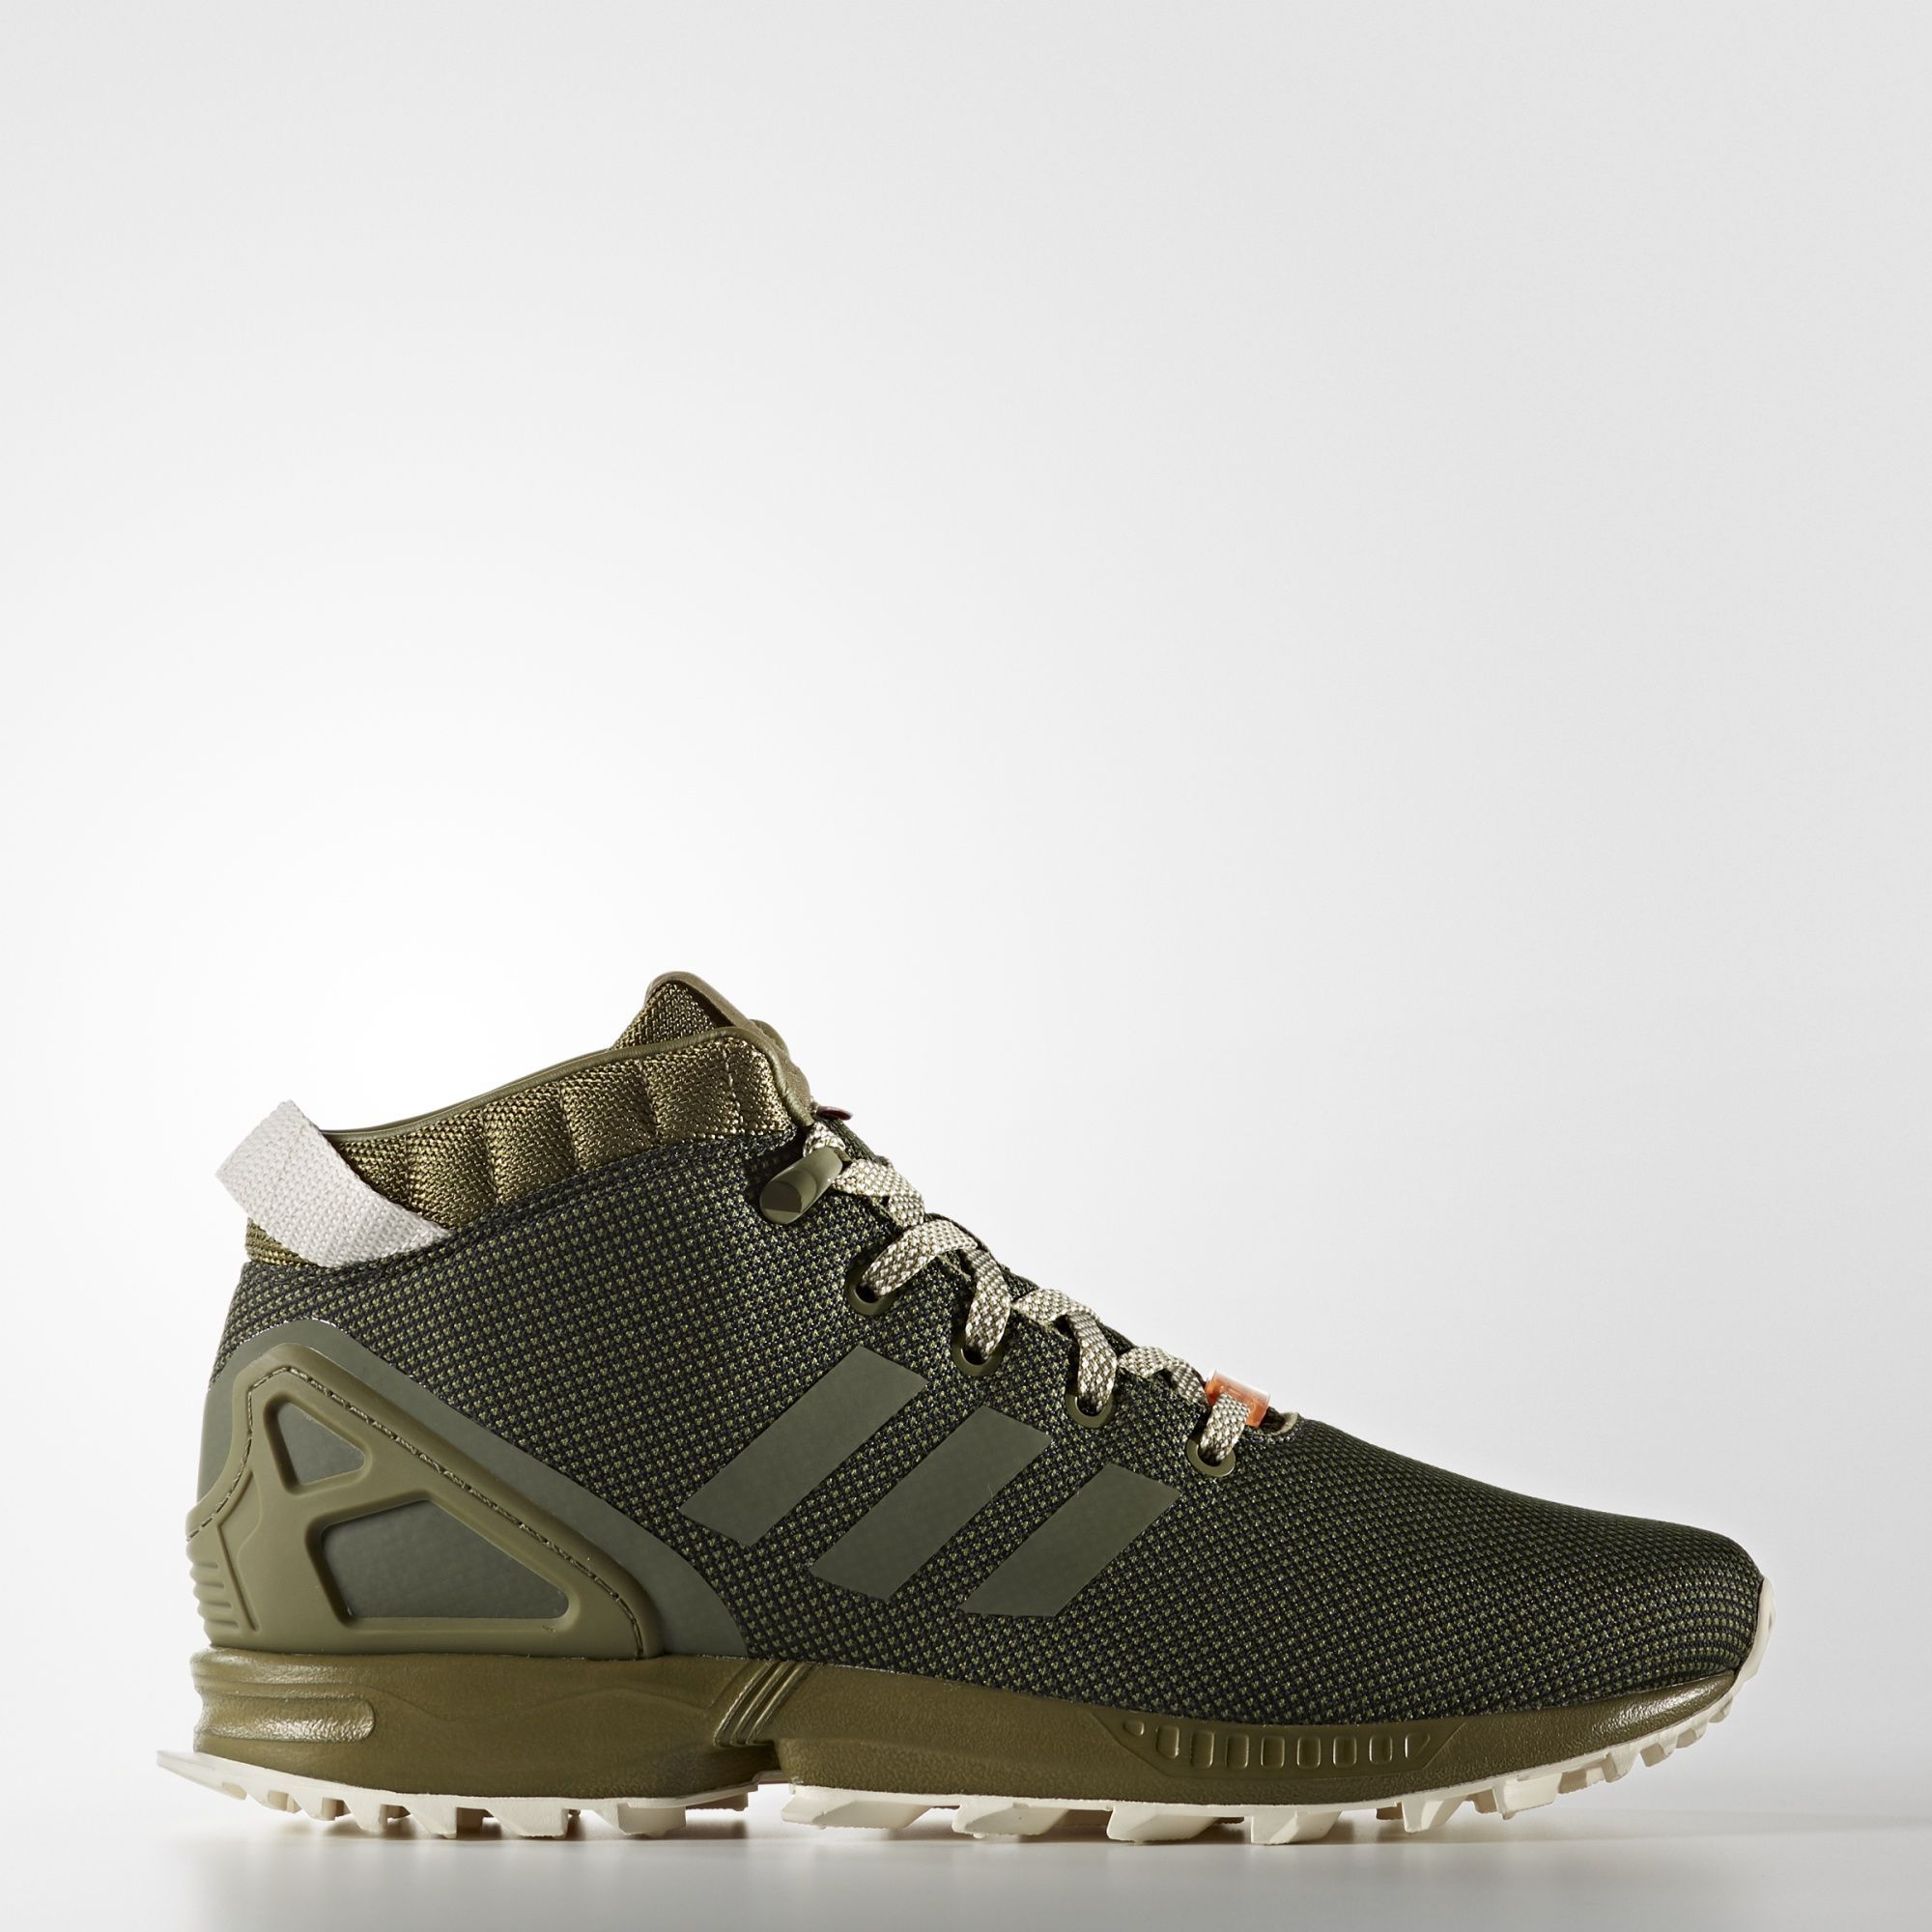 Adidas ZX Flux London 'Phil Mitchells' Limited Edition, 1 of 150